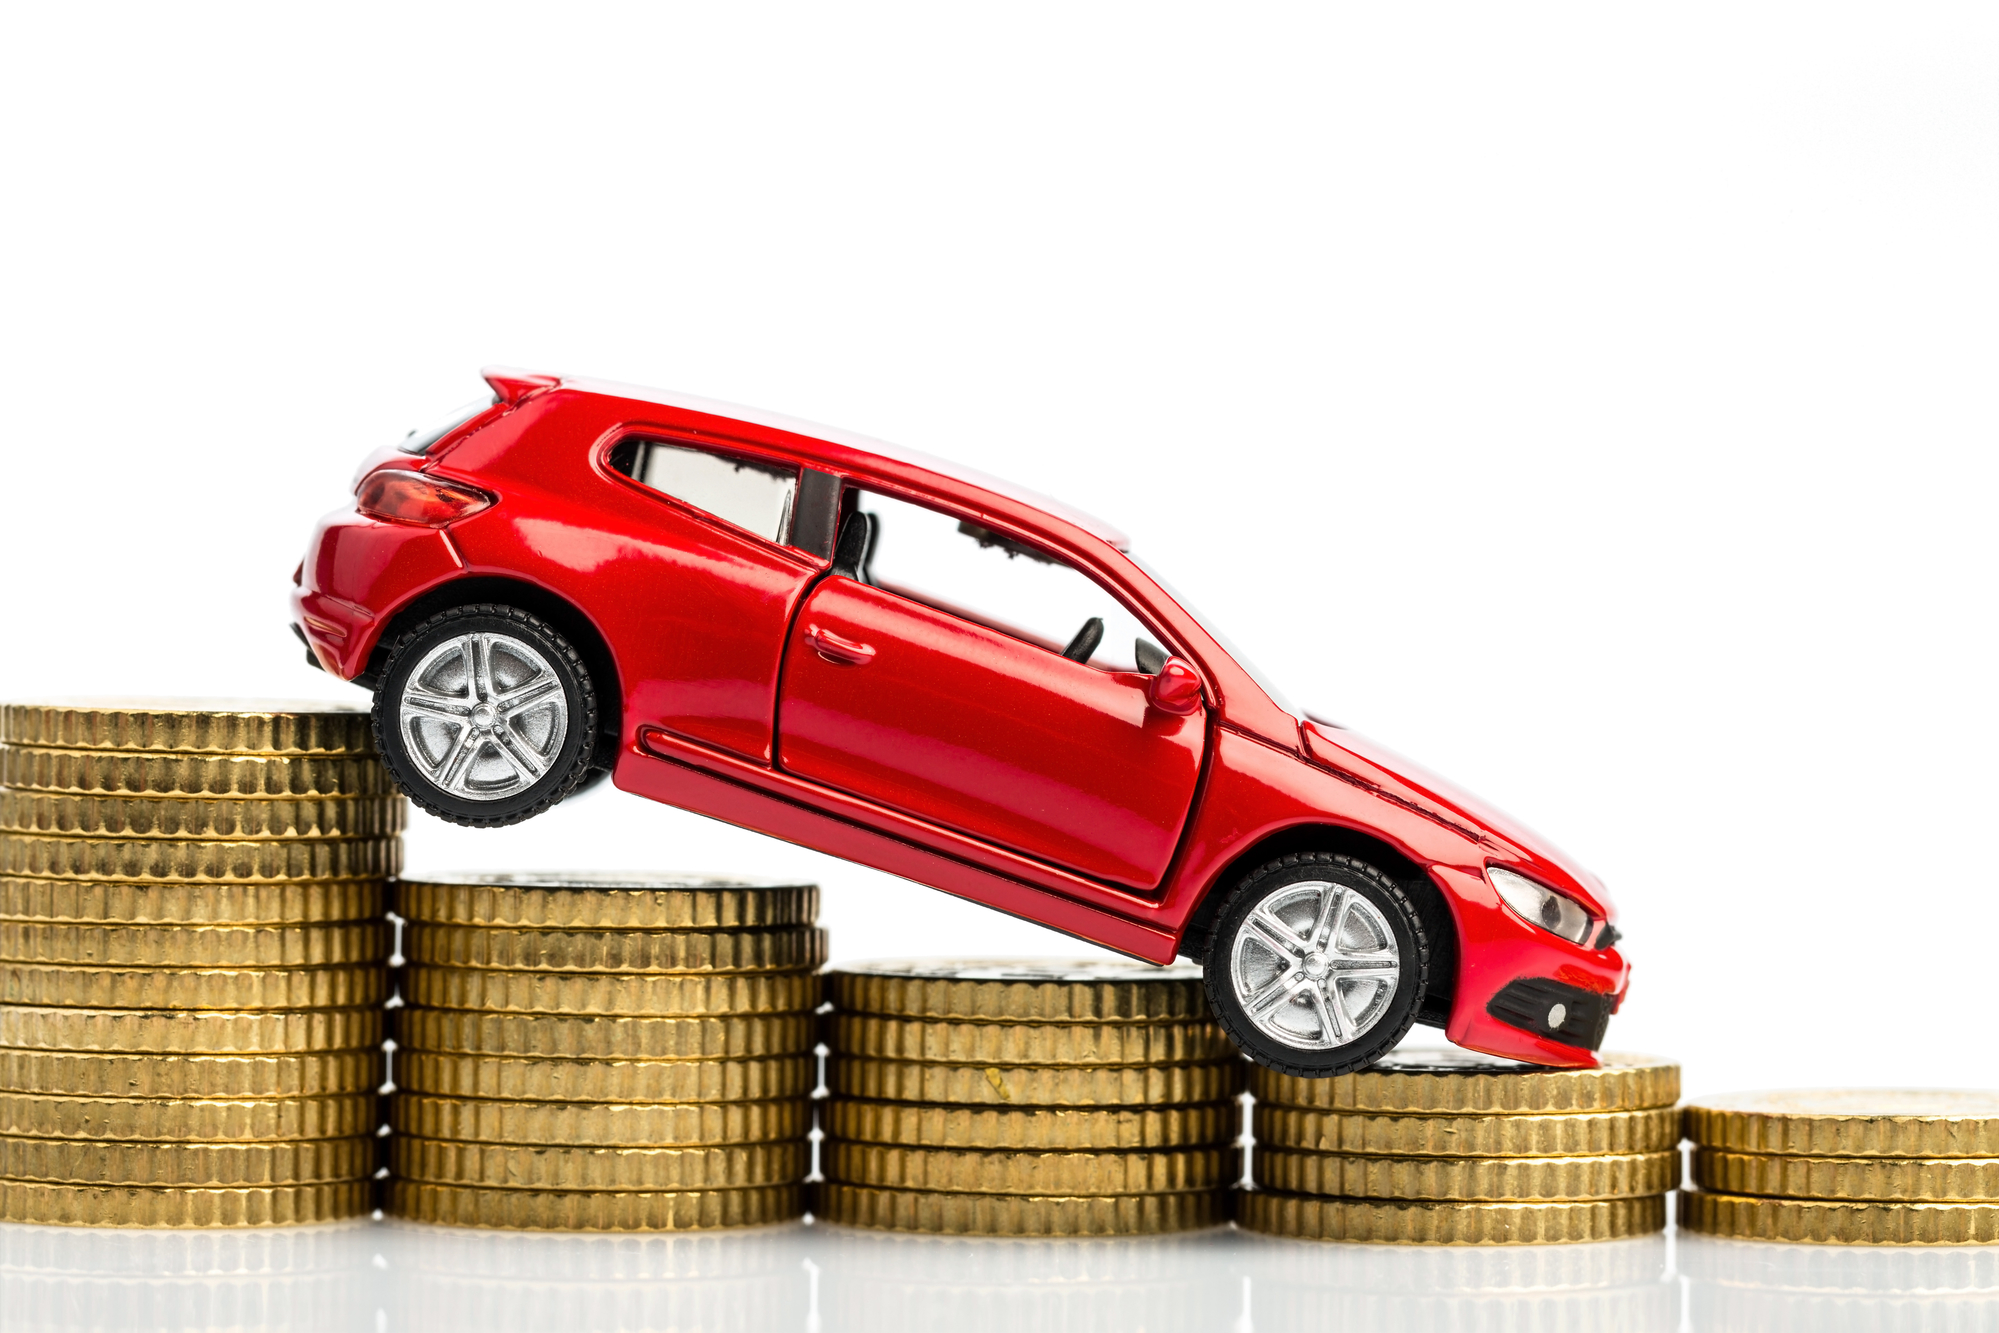 The cheapest car - whether our financial dreams will come true